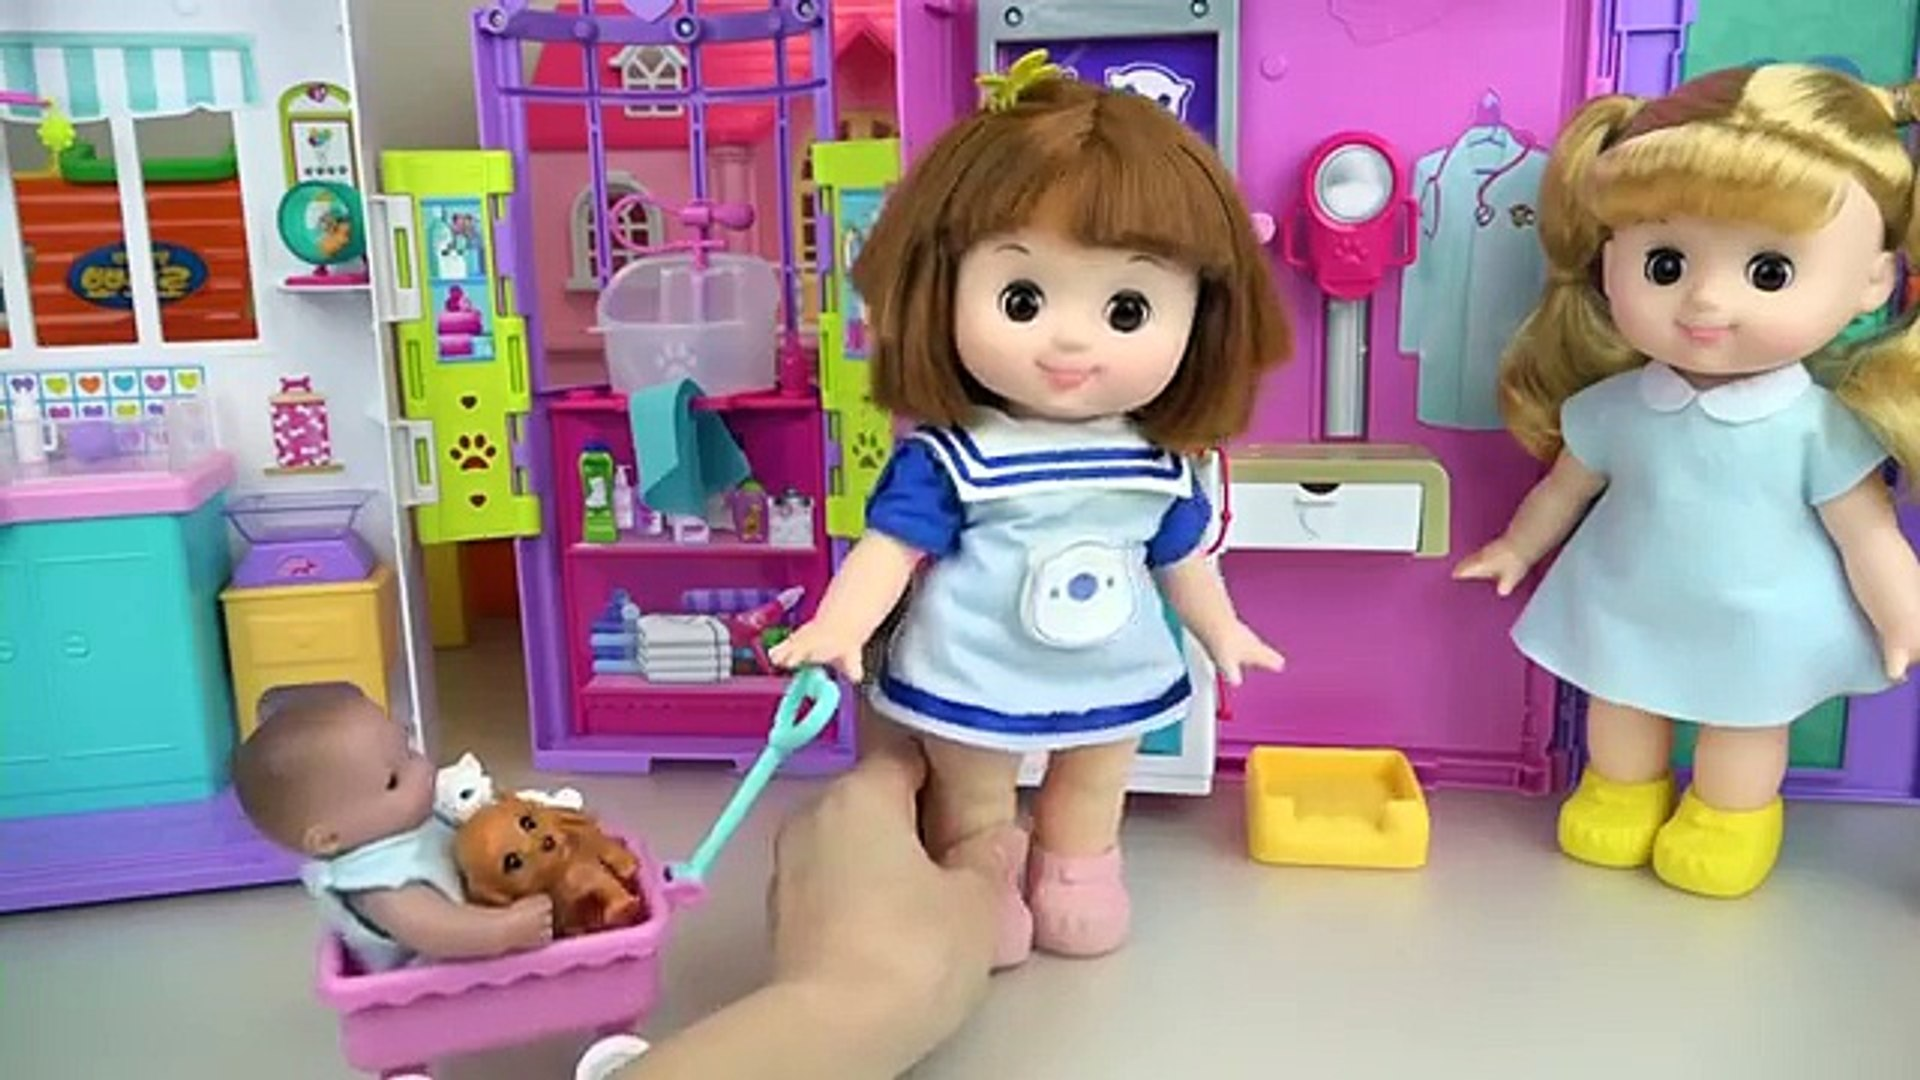 Baby doll and pet animal care house toys play